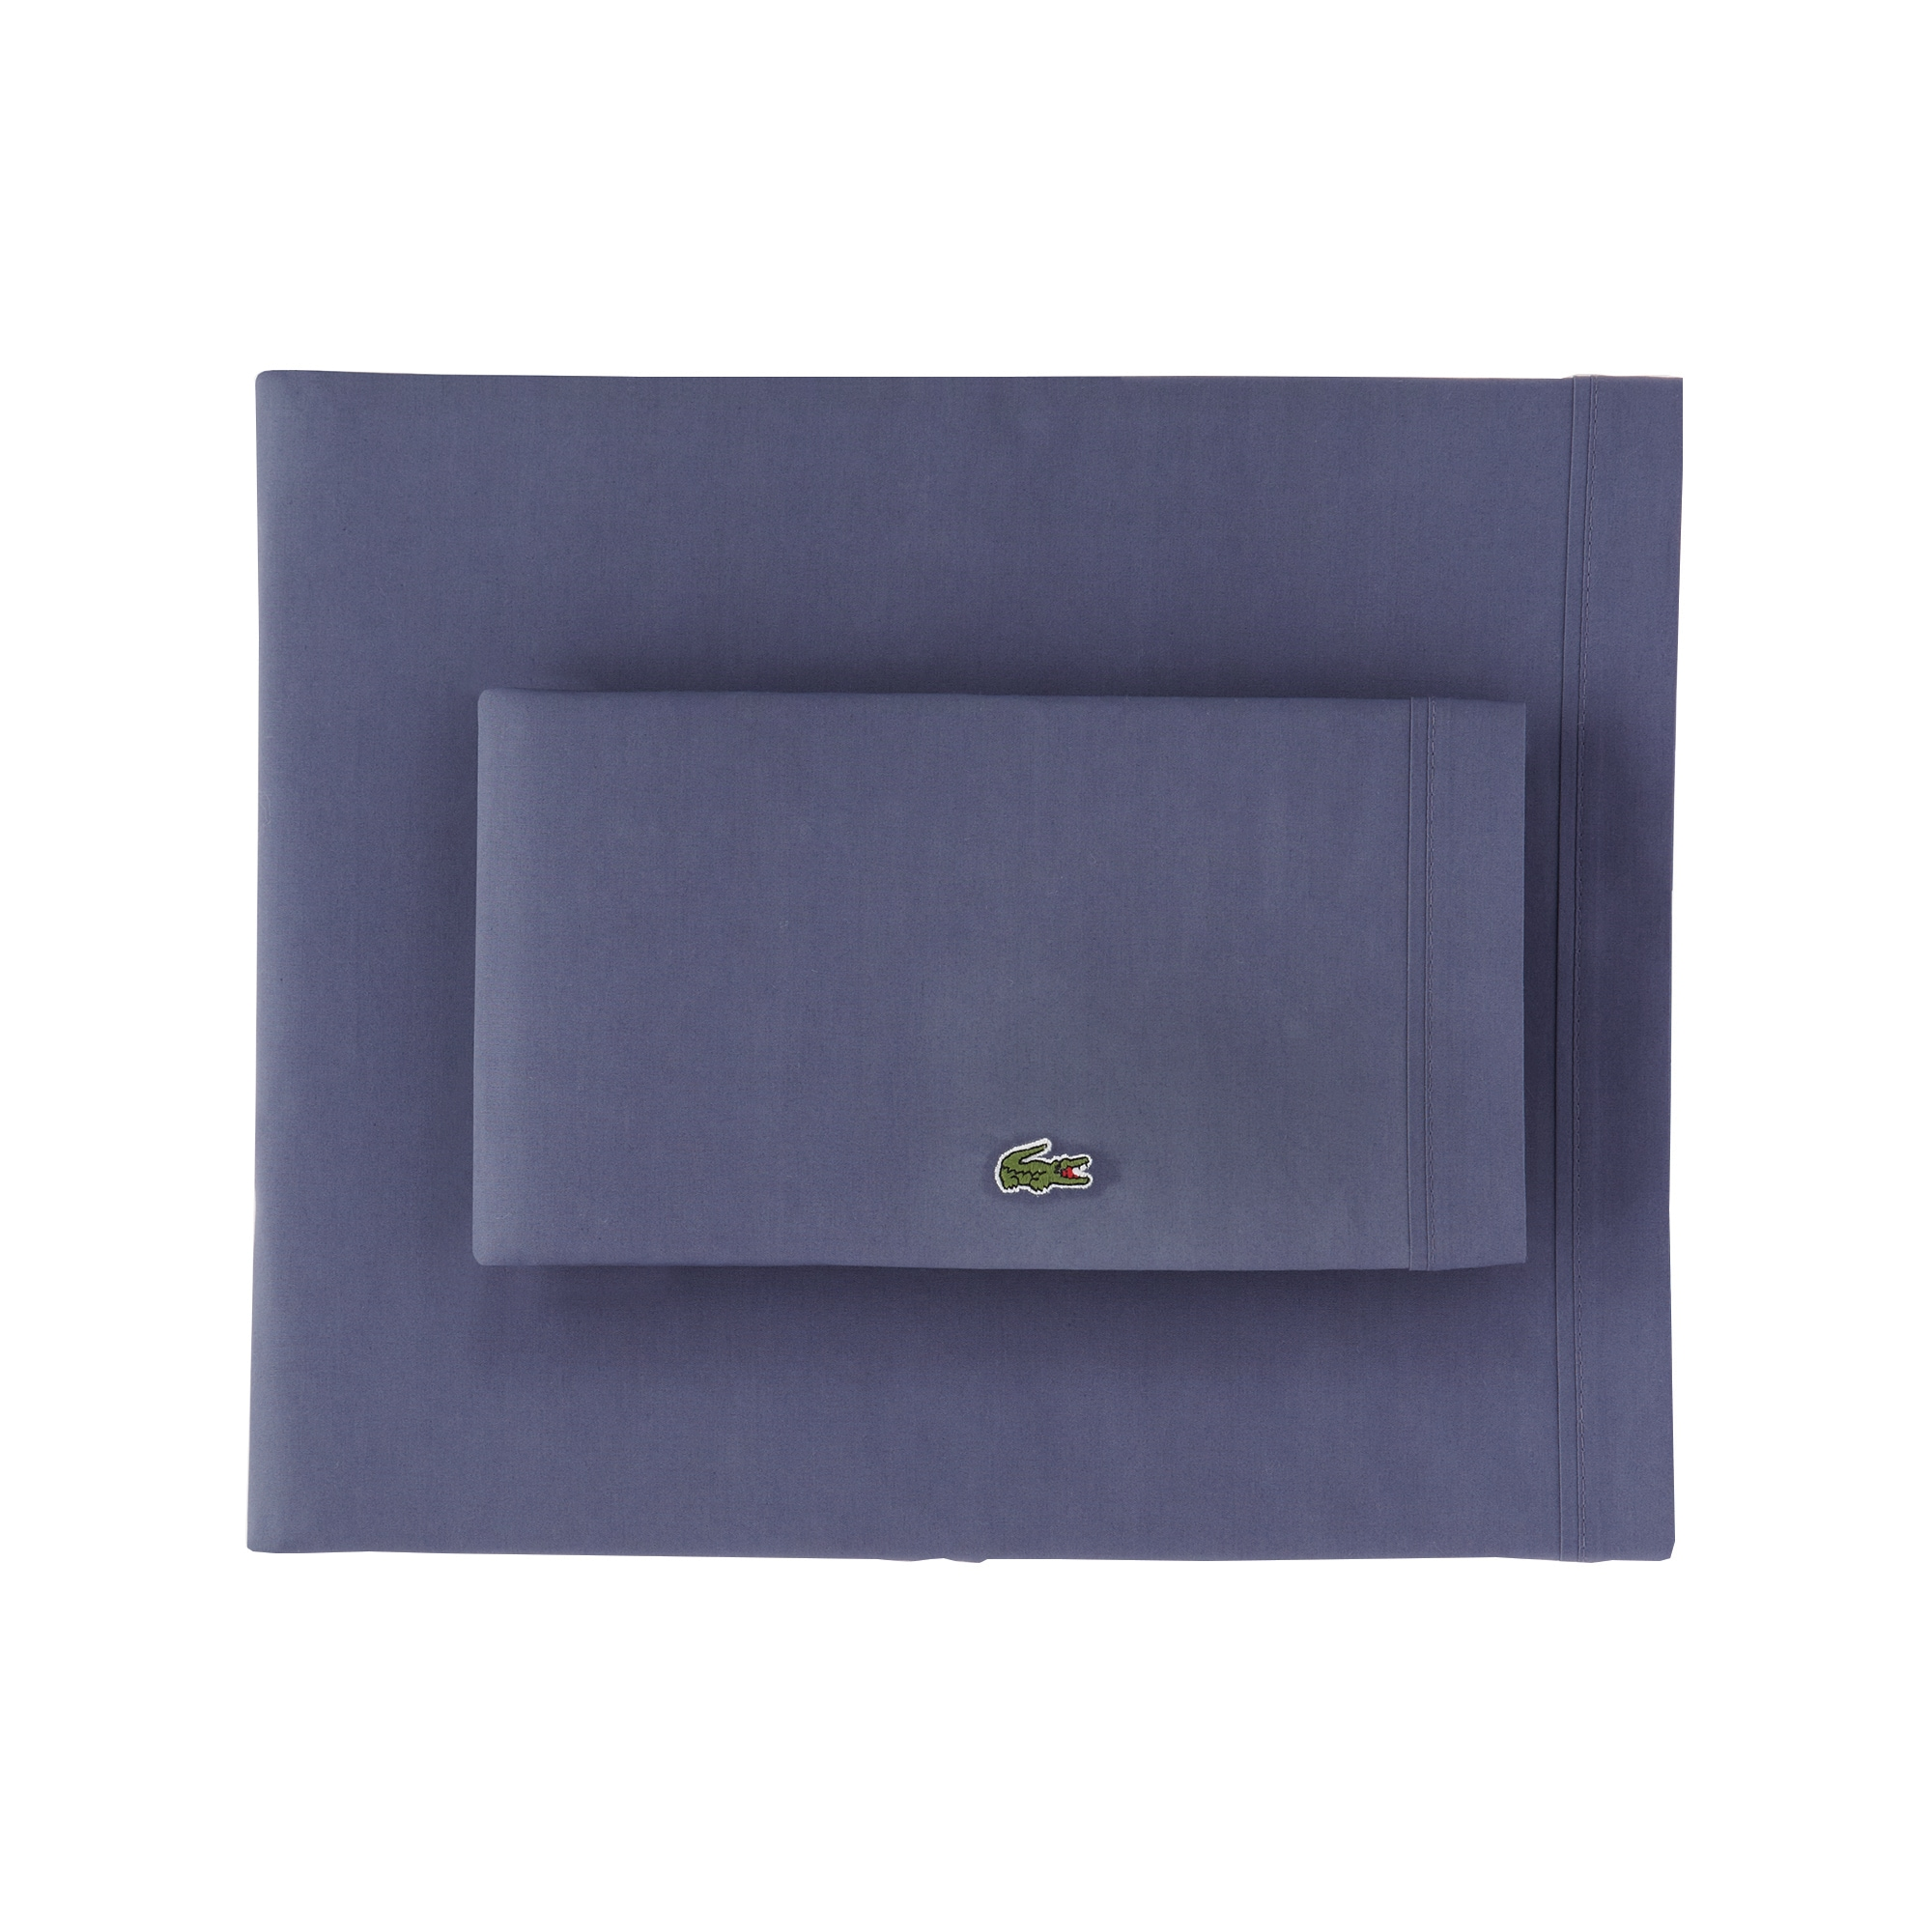 Full Percale Pillow Case Set